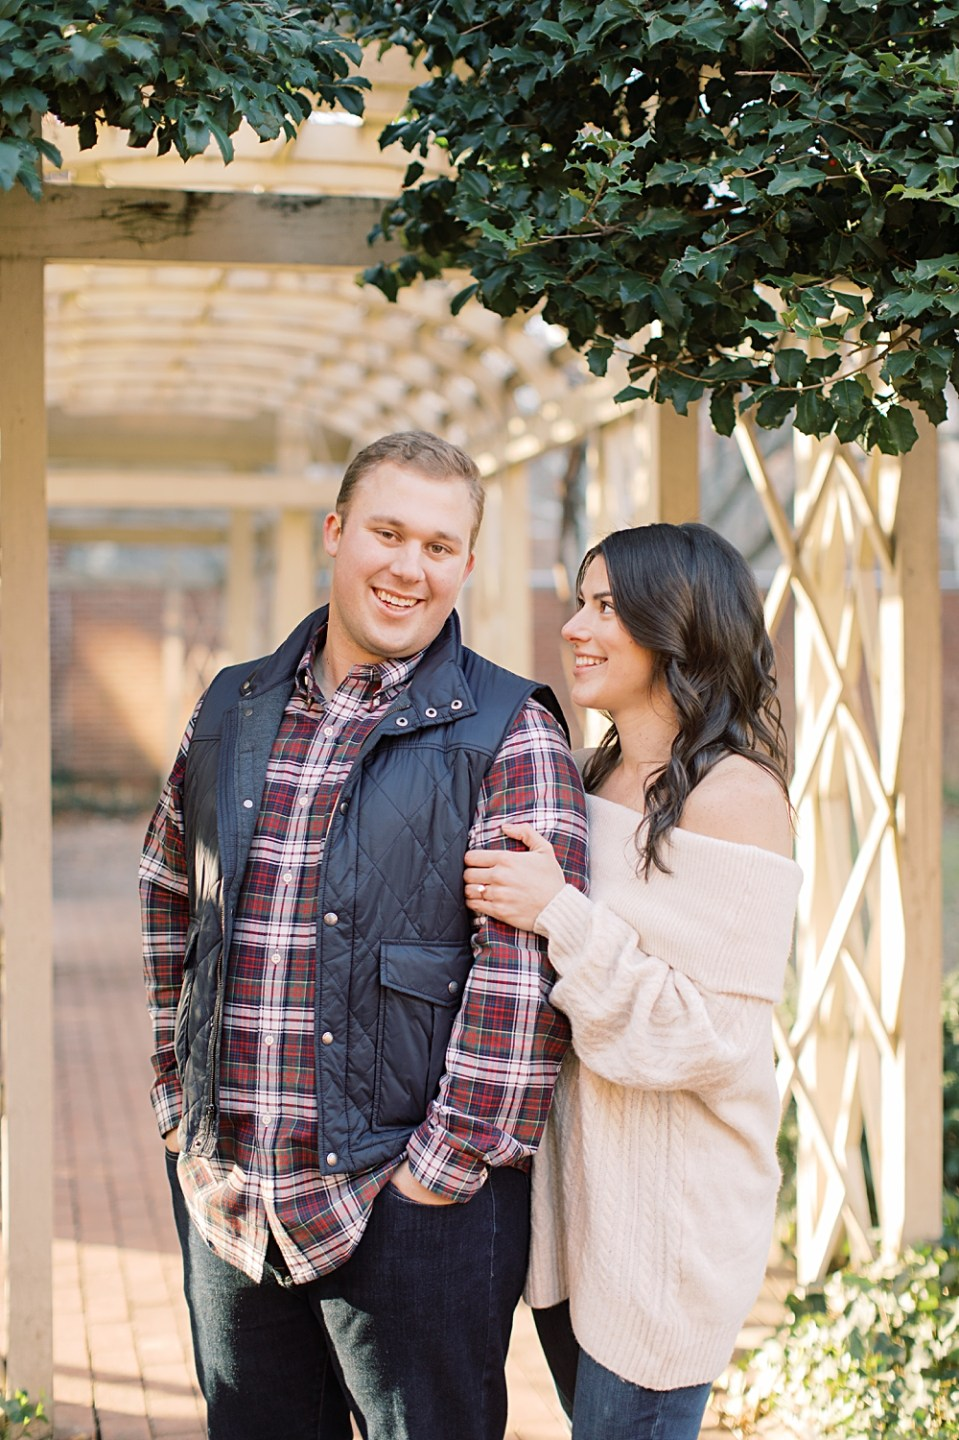 18th Century Garden Engagement Photos | Philadelphia Engagement Session